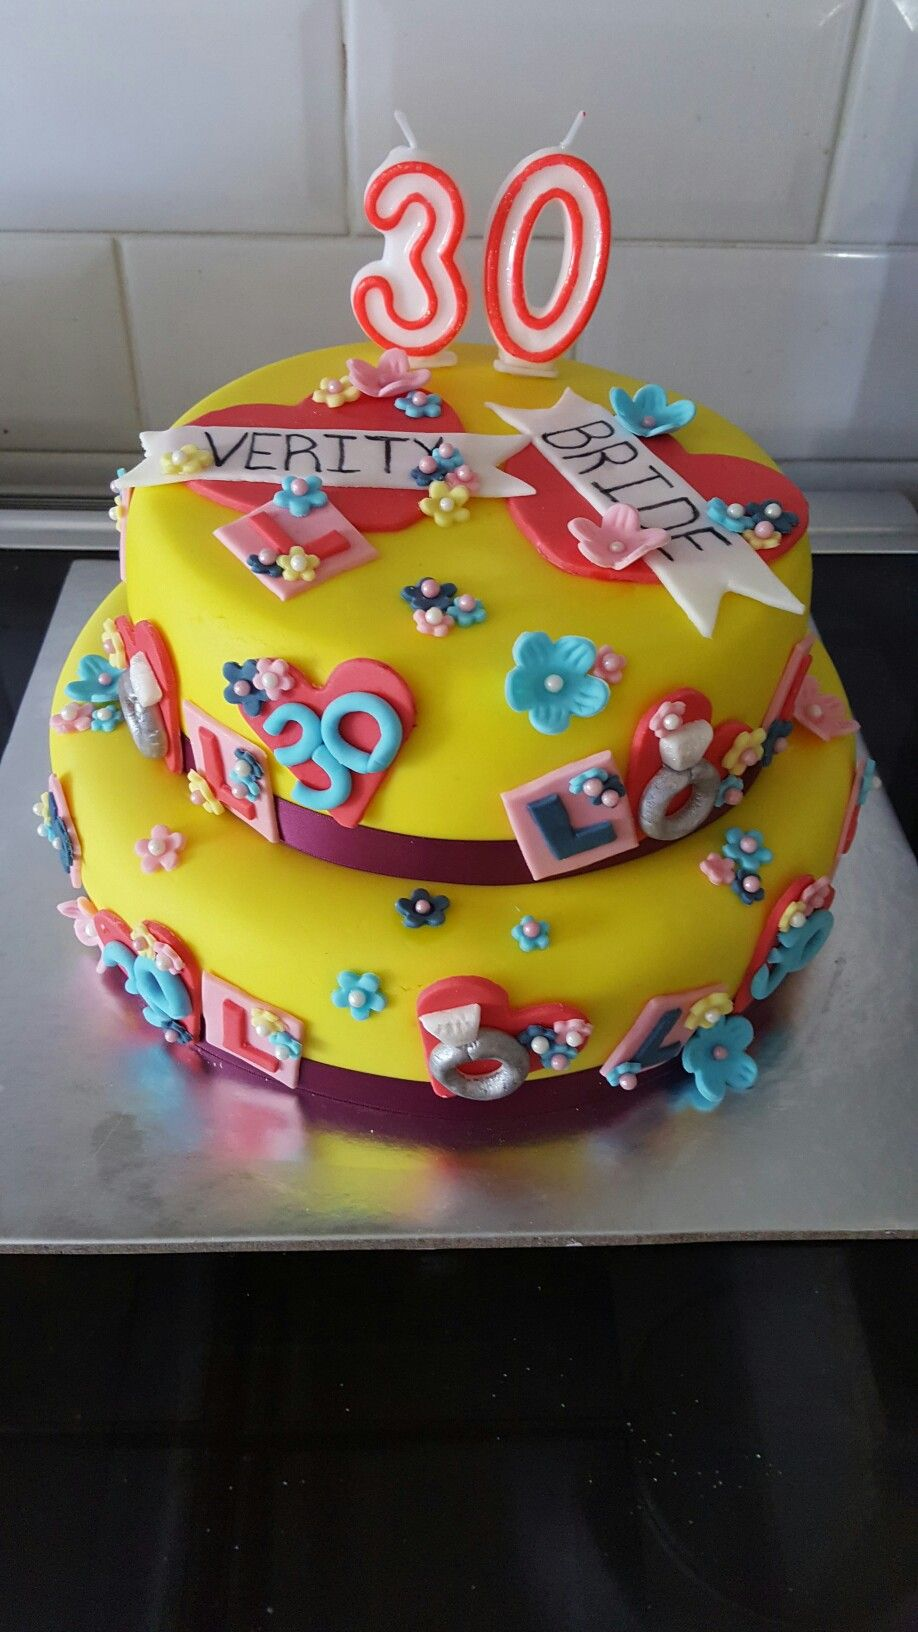 Hen party mixed with a 30th birthday cake for Verity